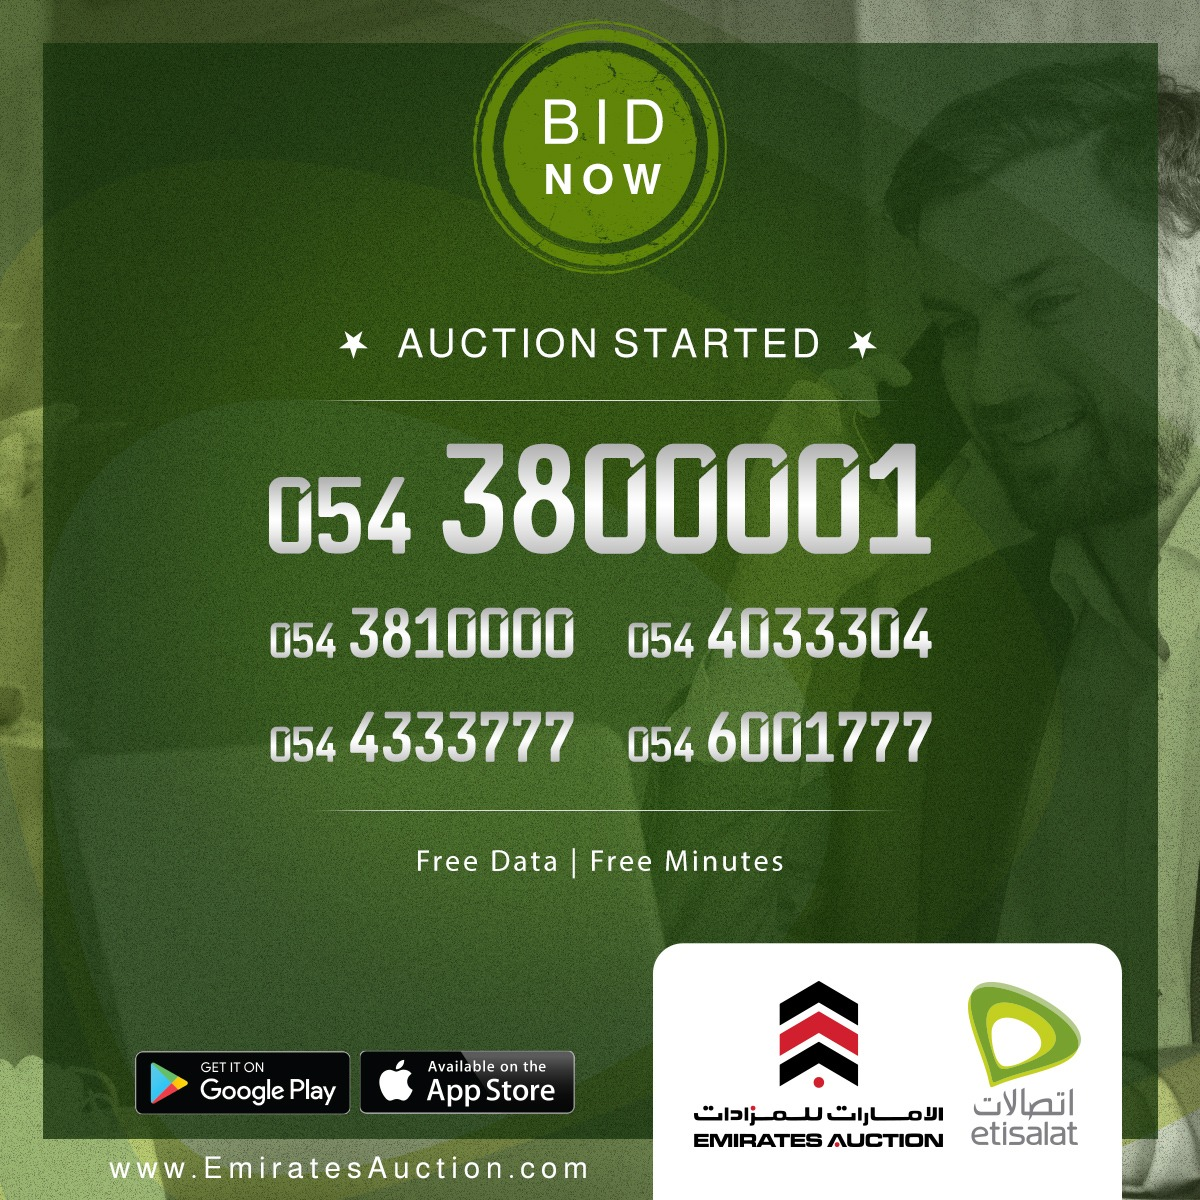 The Etisalat auction is back with new special numbers! Visit our website or download our app to start bidding. Link in bio . #EmiratesAuction #UAE #Cars #Luxury #ReadySetAuction #Etisalat #vipnumbers #etisalat_numbers #mobilenumbers #uaenumberspic.twitter.com/x3hypR4NQT